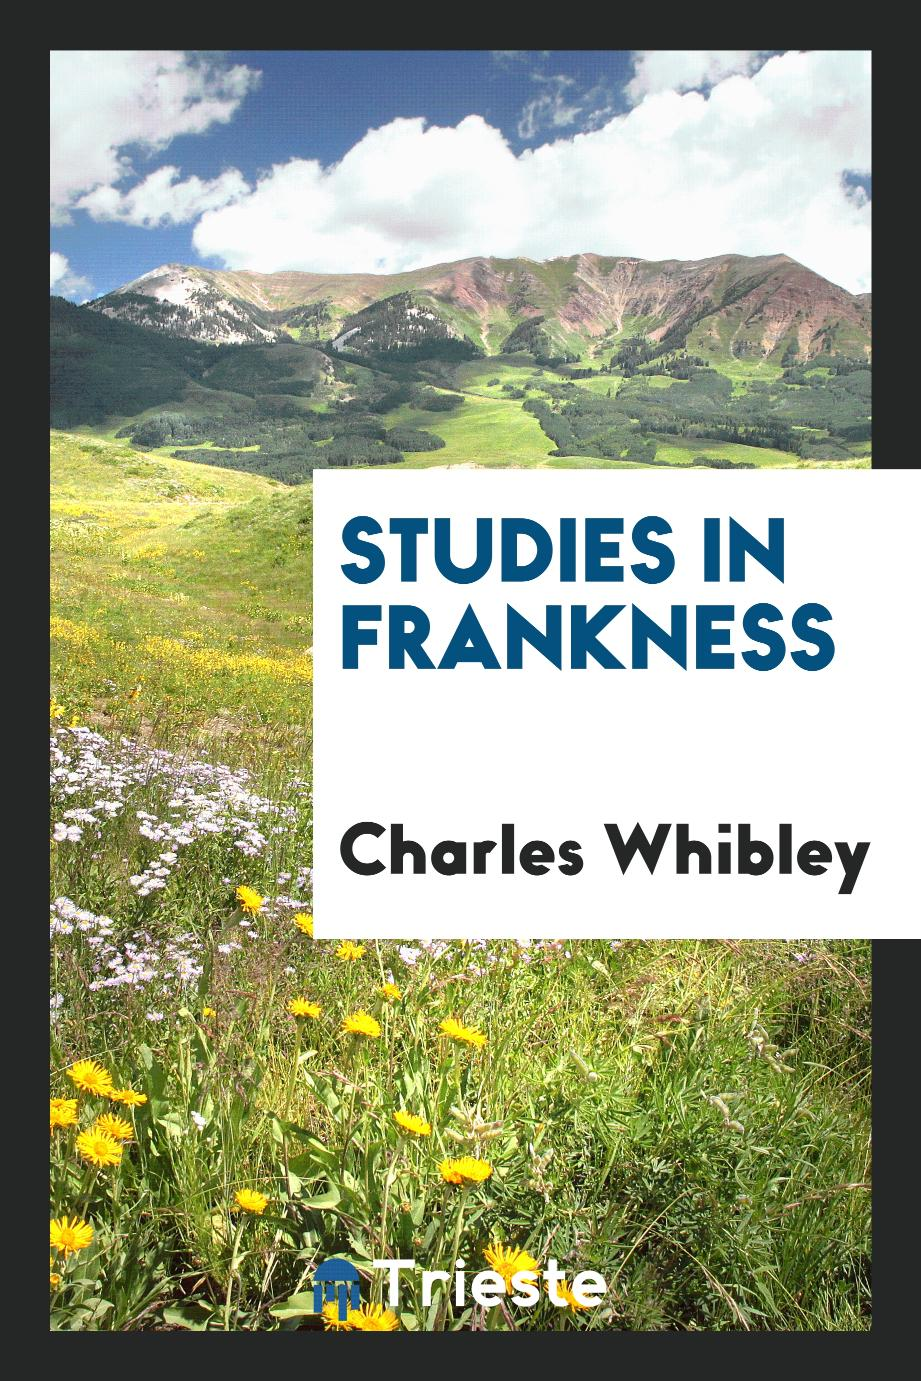 Studies in frankness